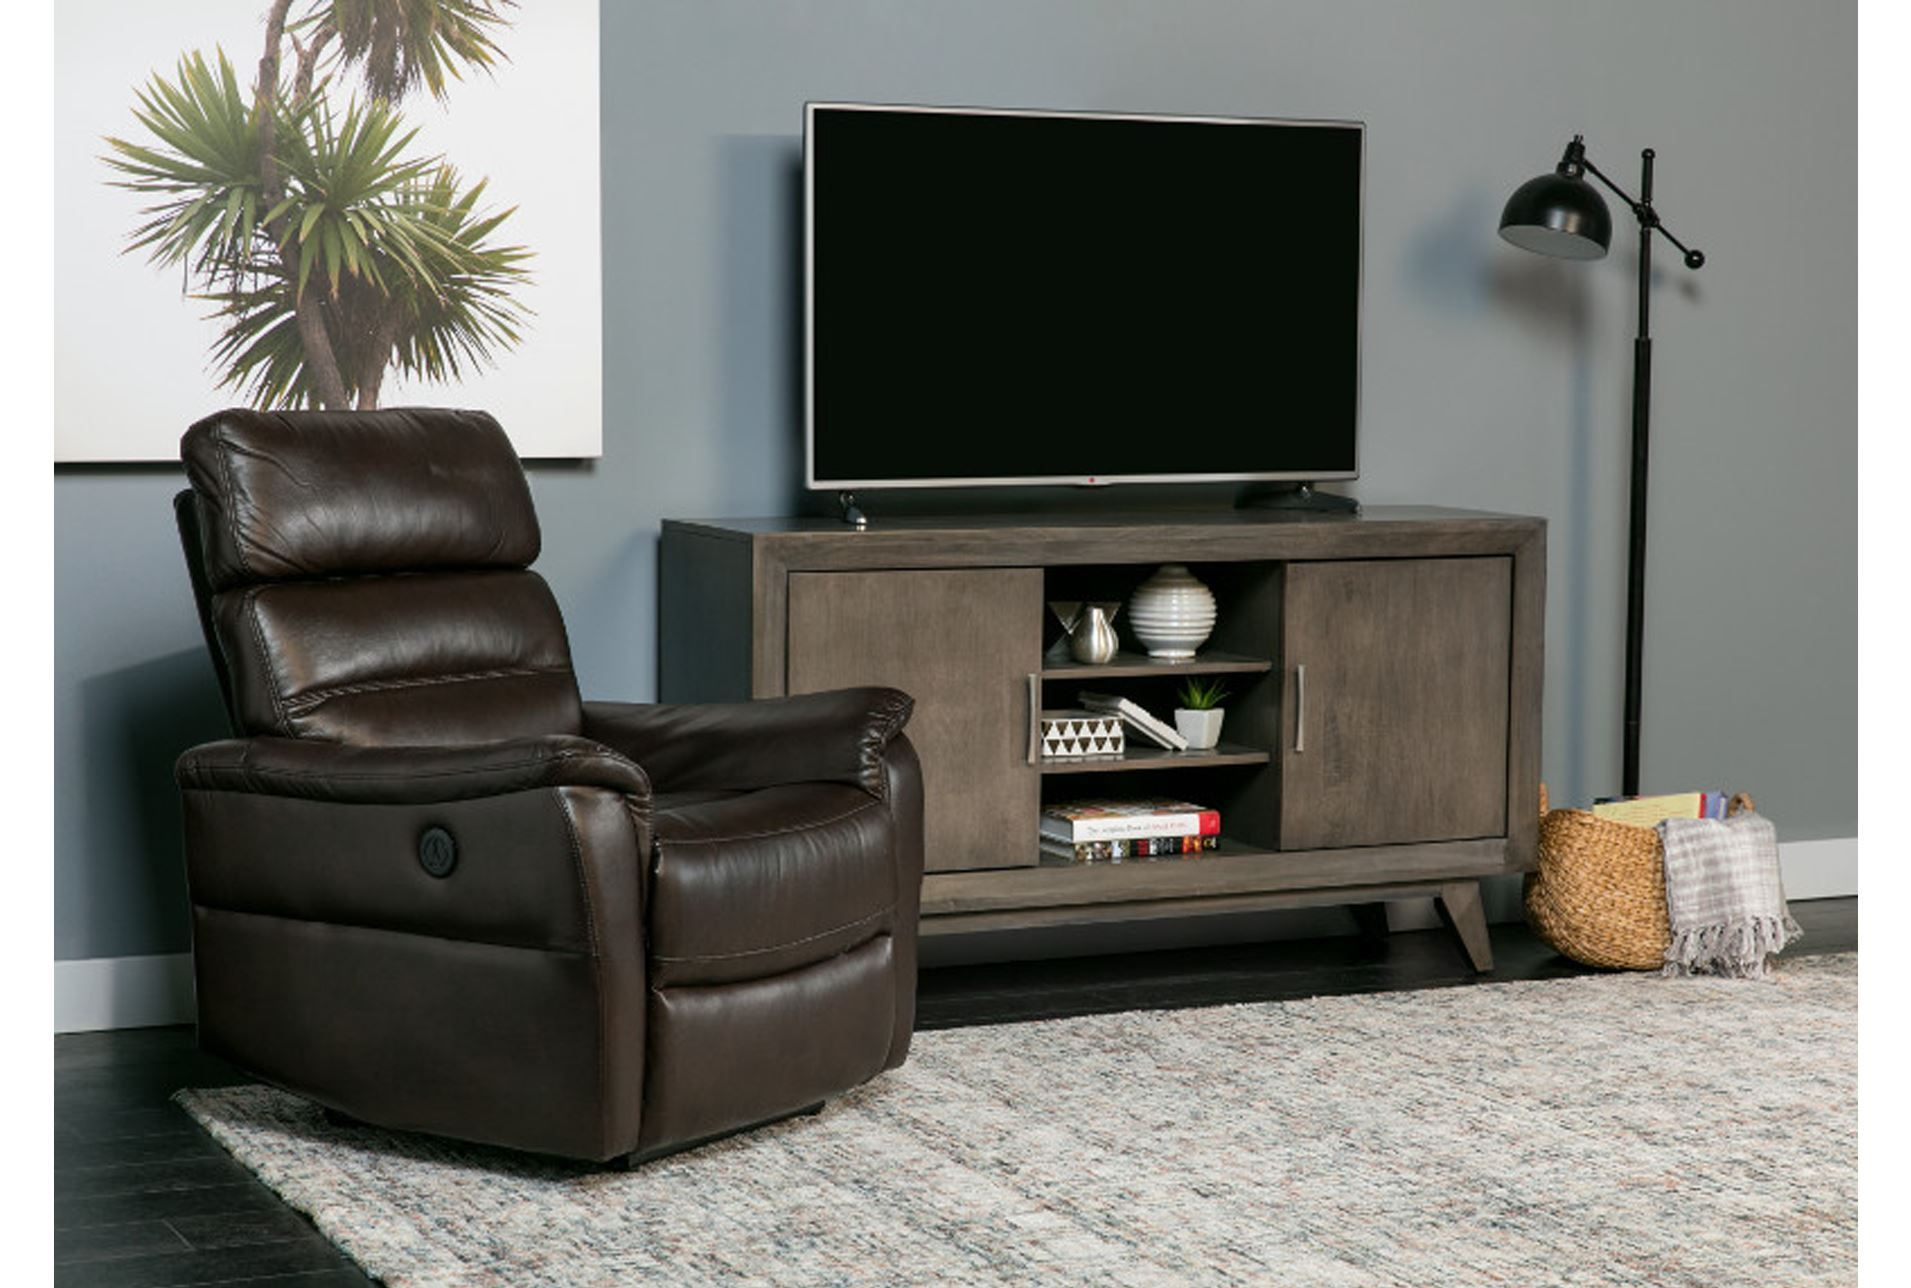 60 Inch Tv Stand, Abbott Driftwood, Grey | Pinterest | 60 Inch Tvs Regarding Kai 63 Inch Tv Stands (Photo 9 of 30)